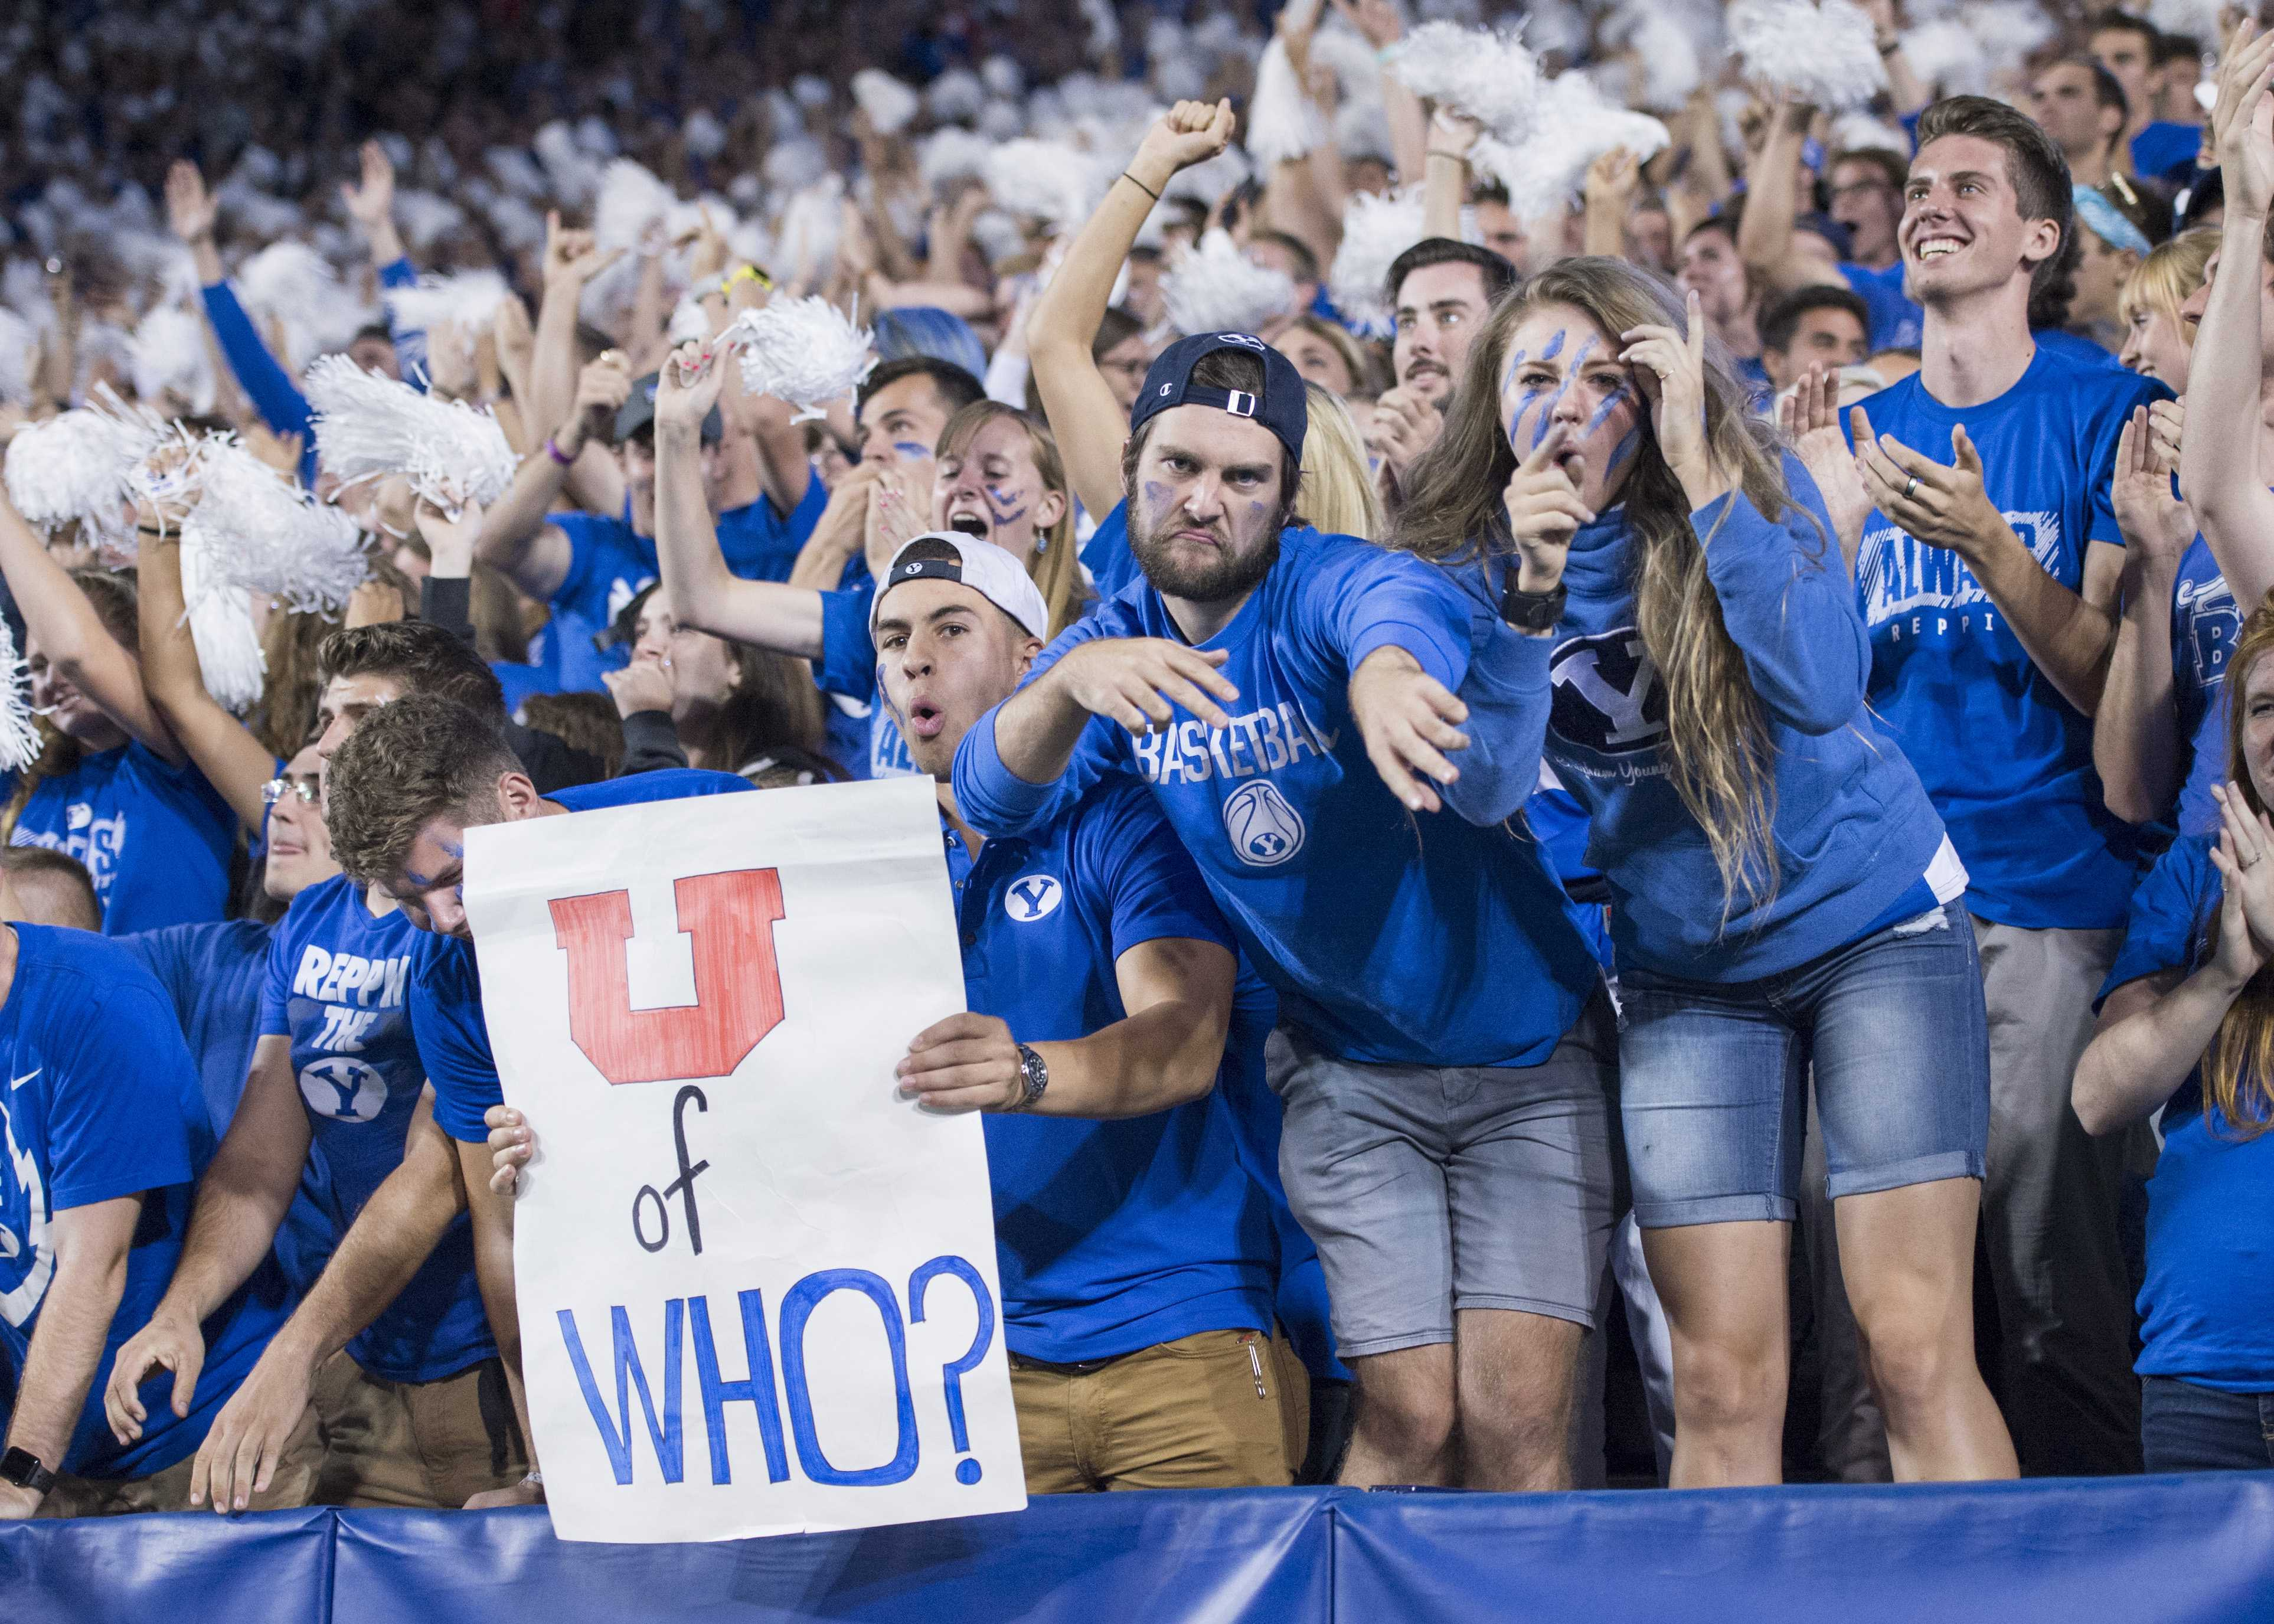 BYU students celebrate after a BYU touchdown vs. The University of Utah Utes in an NCAA football game at LaVell Edwards Stadium in Provo, Utah on Saturday, Sept. 9, 2017  (Photo by Kiffer Creveling | The Daily Utah Chronicle)